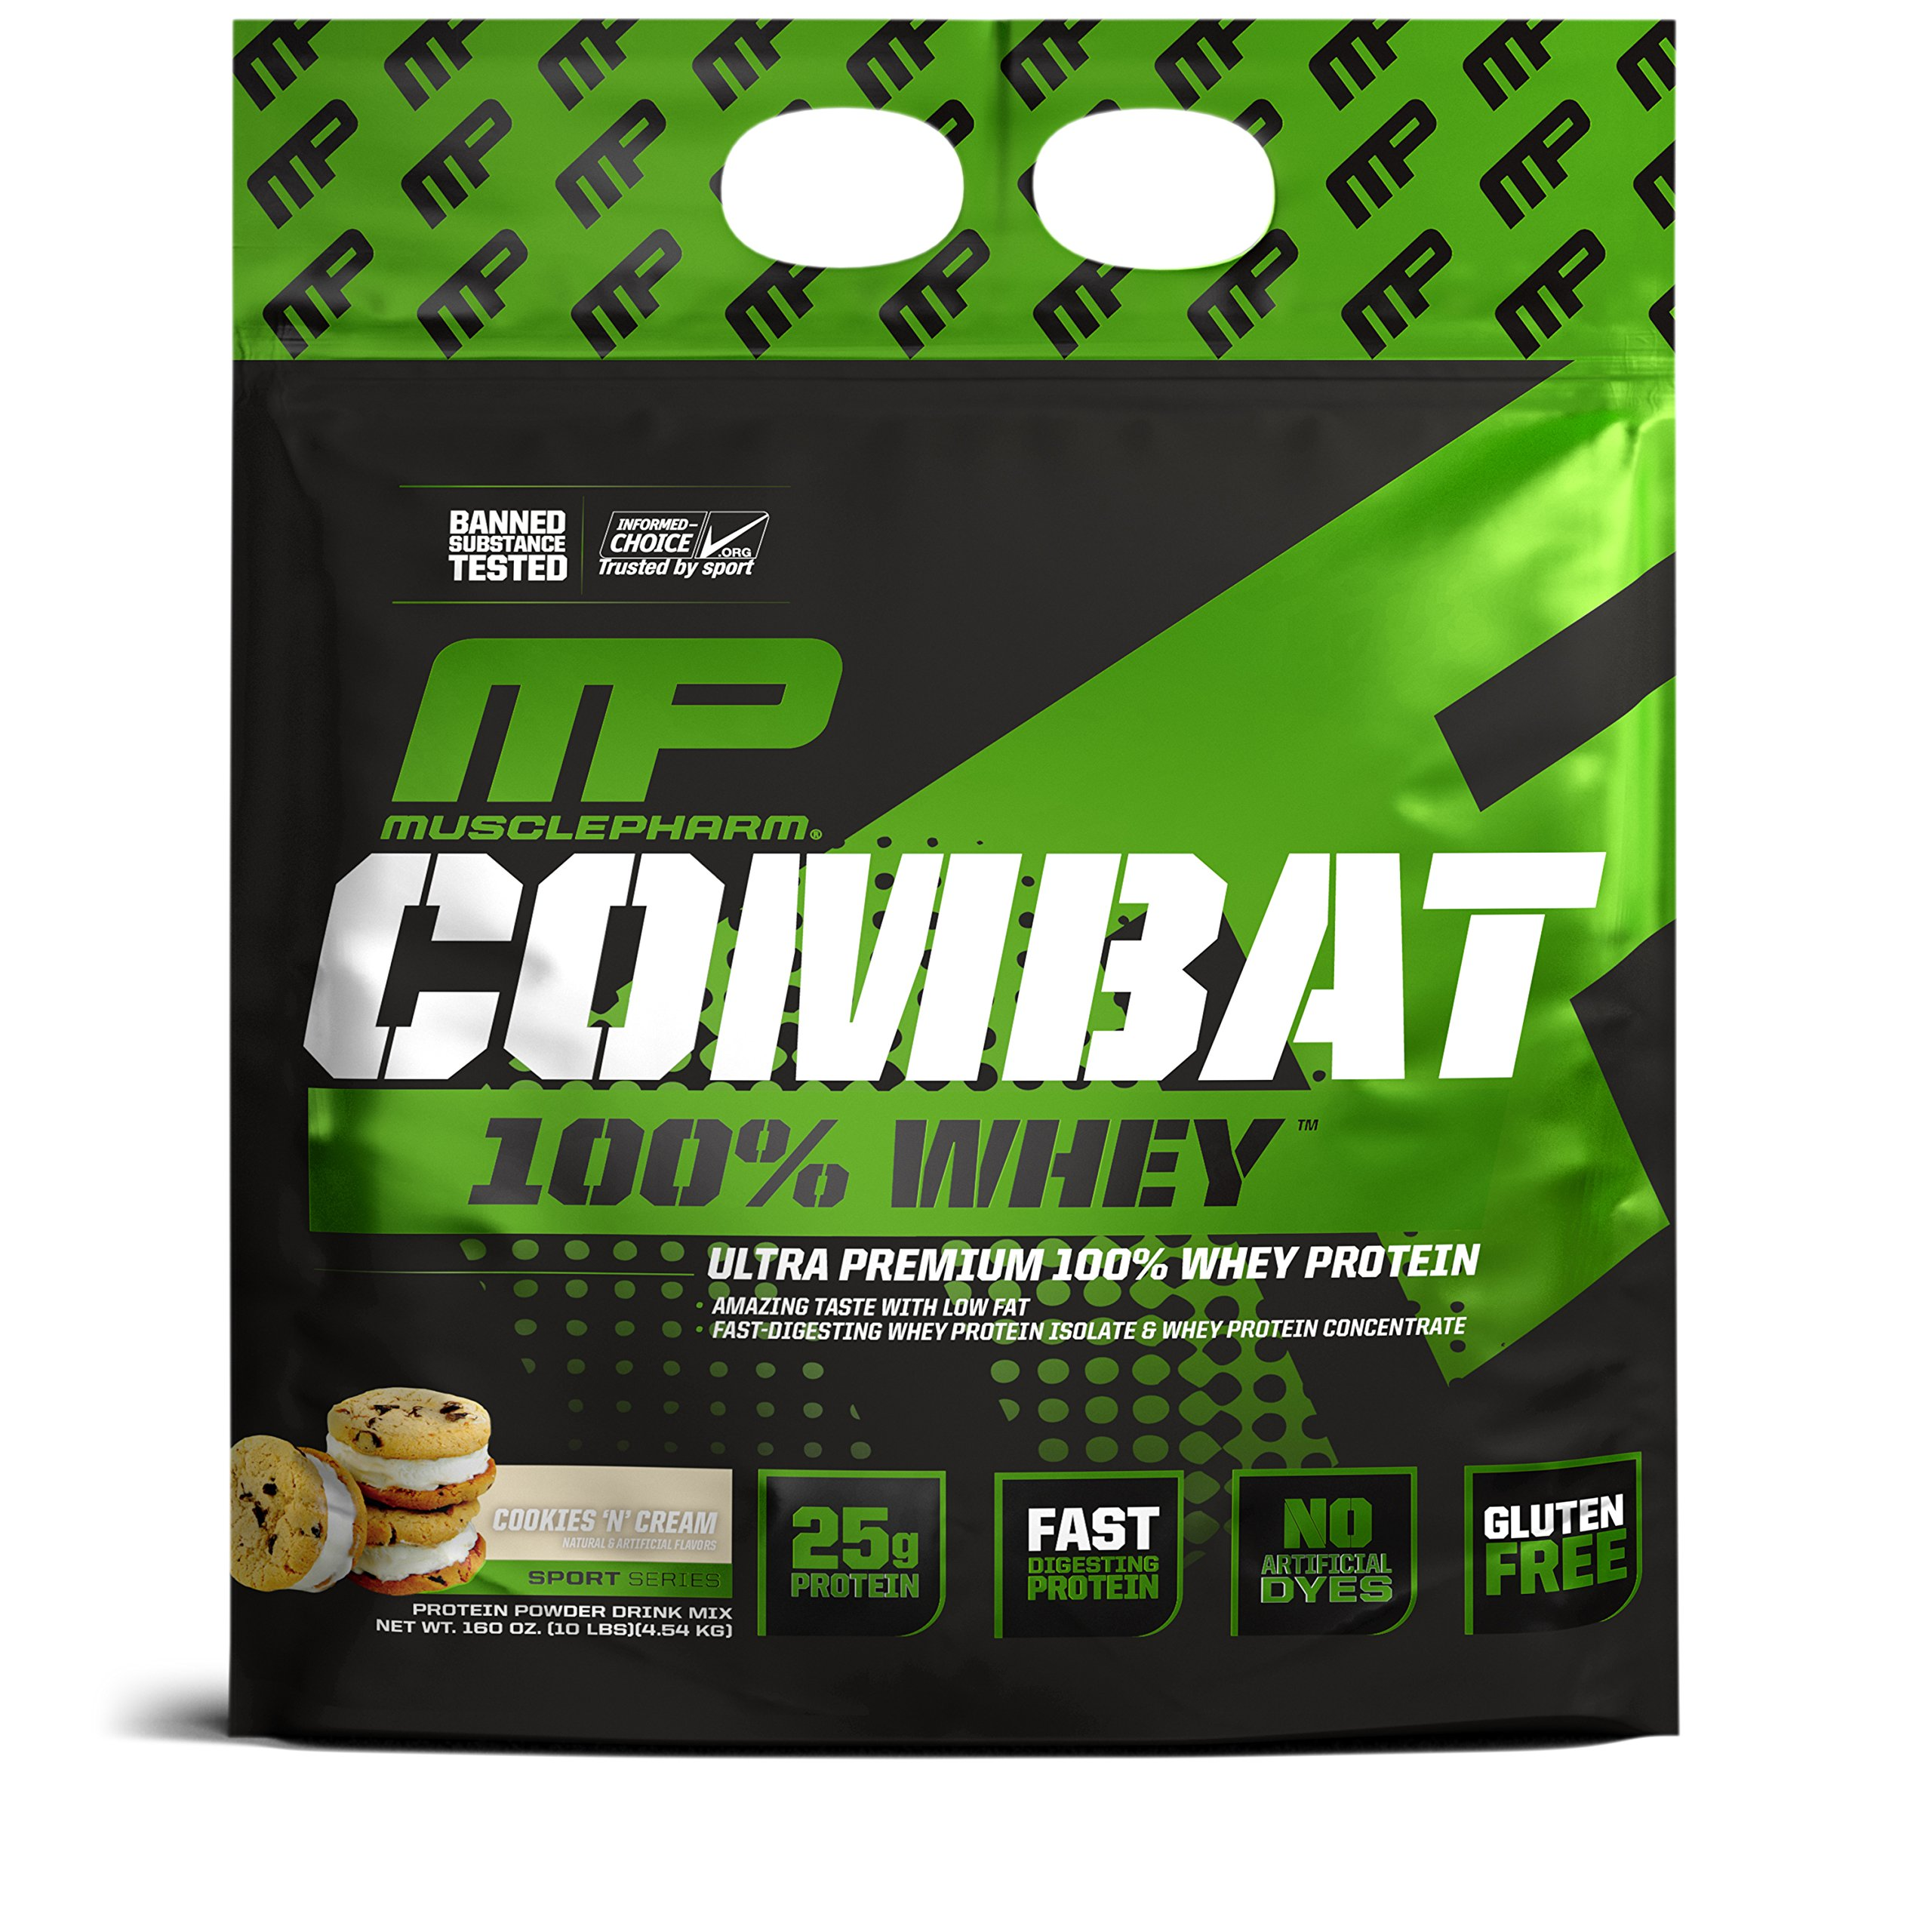 Muscle Pharm Combat 100% Whey Cookies 'n Cream, 10lbs, 2 Pound by Muscle Pharm (Image #1)